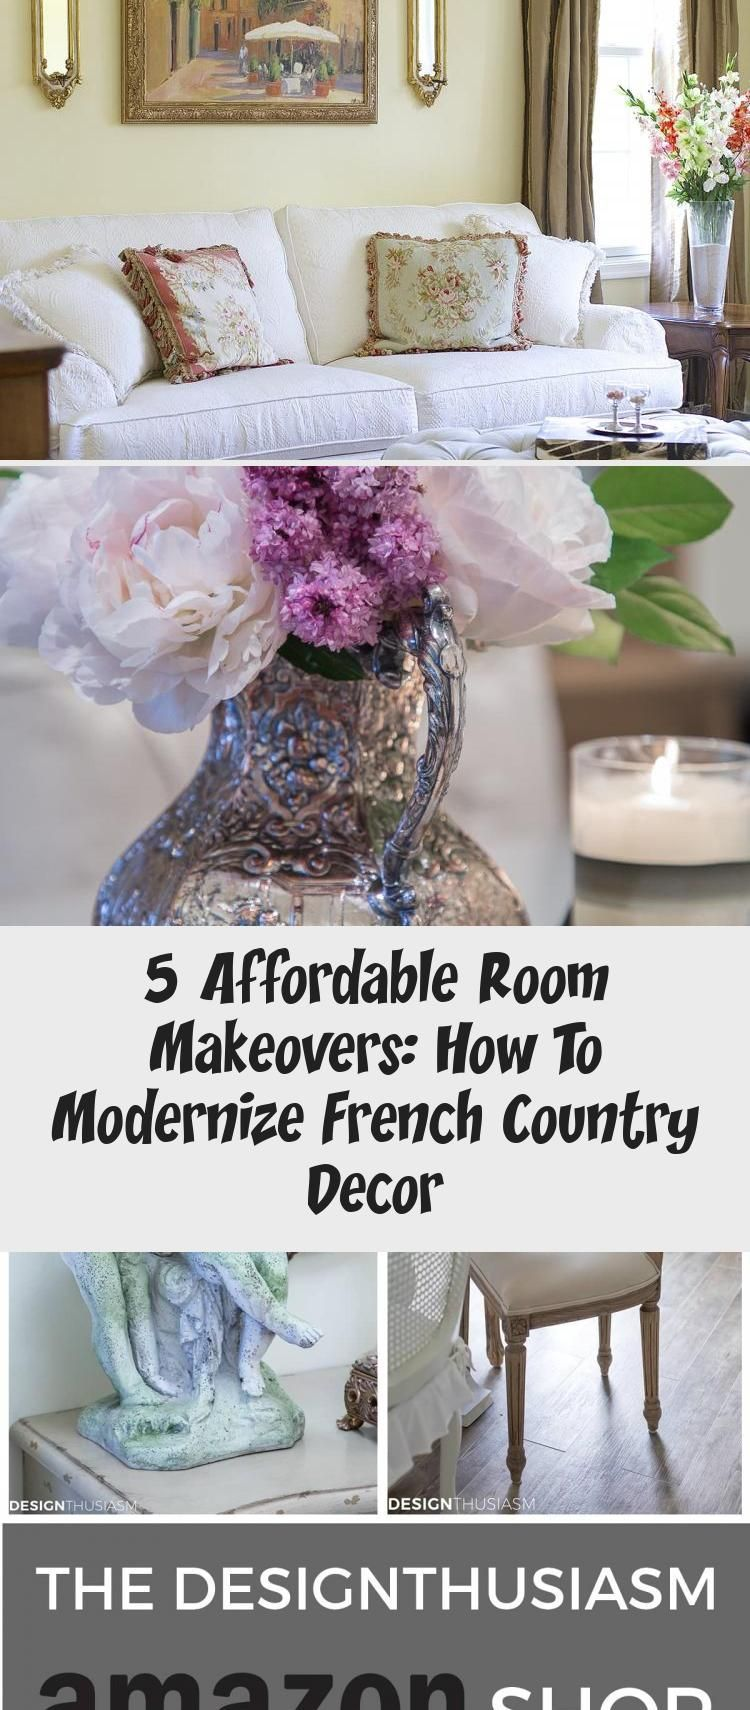 Modern french Decor | If you're looking to update your home without spending a fortune, these room makeovers will show you how to modernize French country decor. -----> #casualelegance #homedecorblog #frenchcountry #frenchcountrydecor #frenchdecoratingideas #modernfrenchcountry #modernfrenchfarmhouse #elegantdecor #romanticdecor #cottagechic #cottagedecor #farmhousestyle #vintagedesign #mixingantiqueswithmodern #ElegantFrenchCountryHomeDecor #ModernFrenchCountryHomeDecor #FrenchCountryHomeDecorS